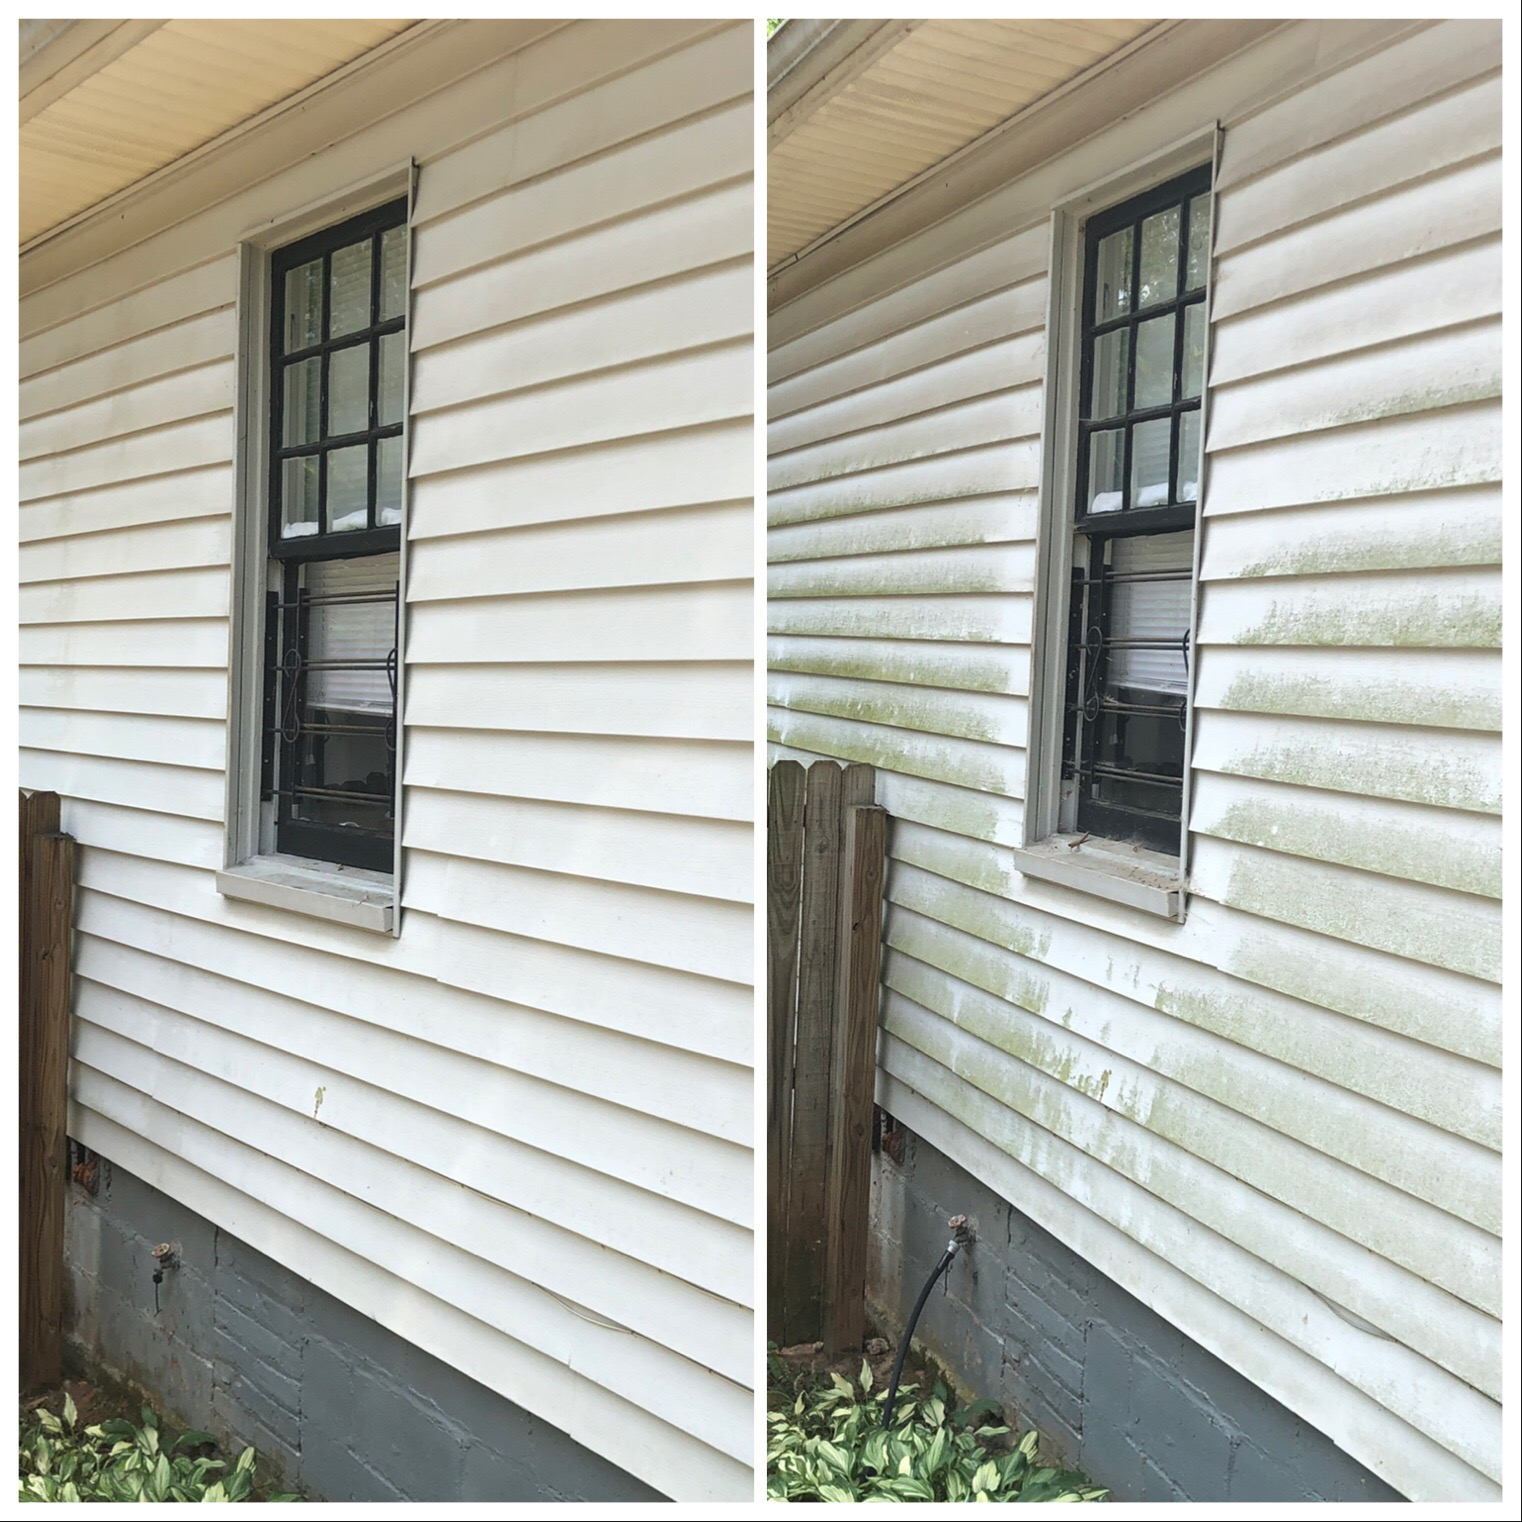 Soft-pressure residential siding cleaner